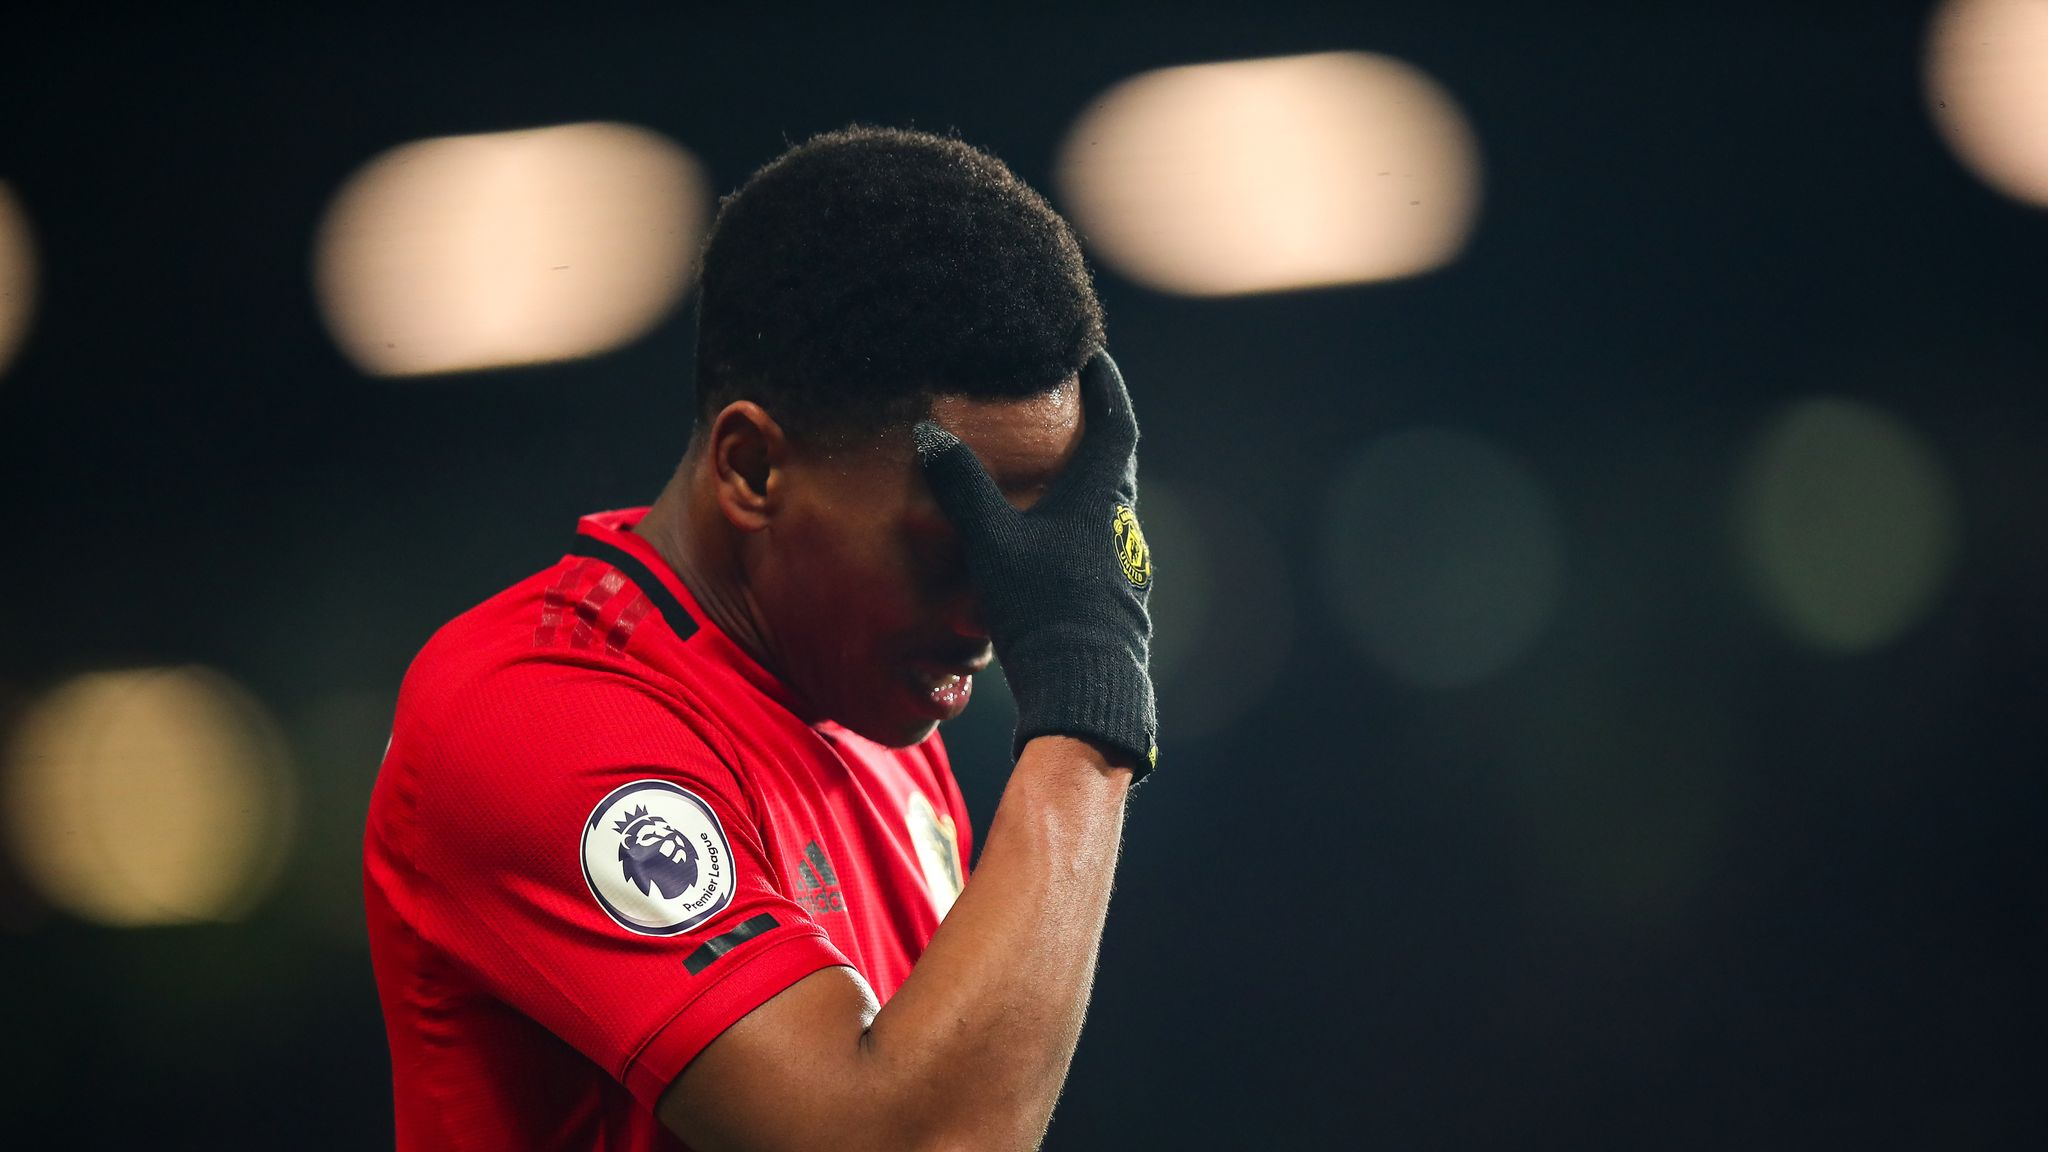 Anthony Martial set to miss Manchester United's clash against Tottenham |  Football News | Sky Sports